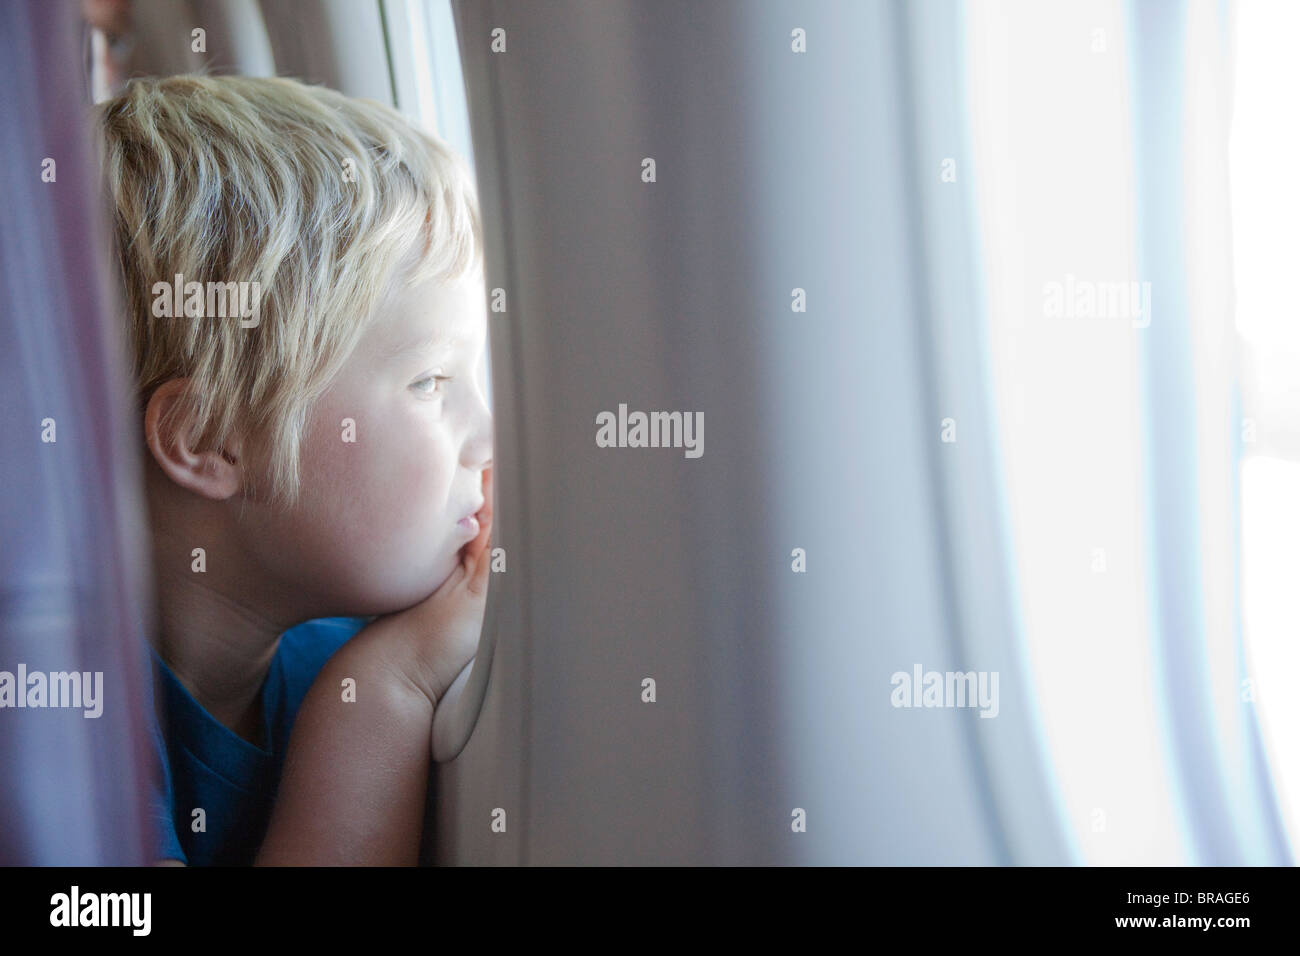 Young boy staring out plane window Stock Photo